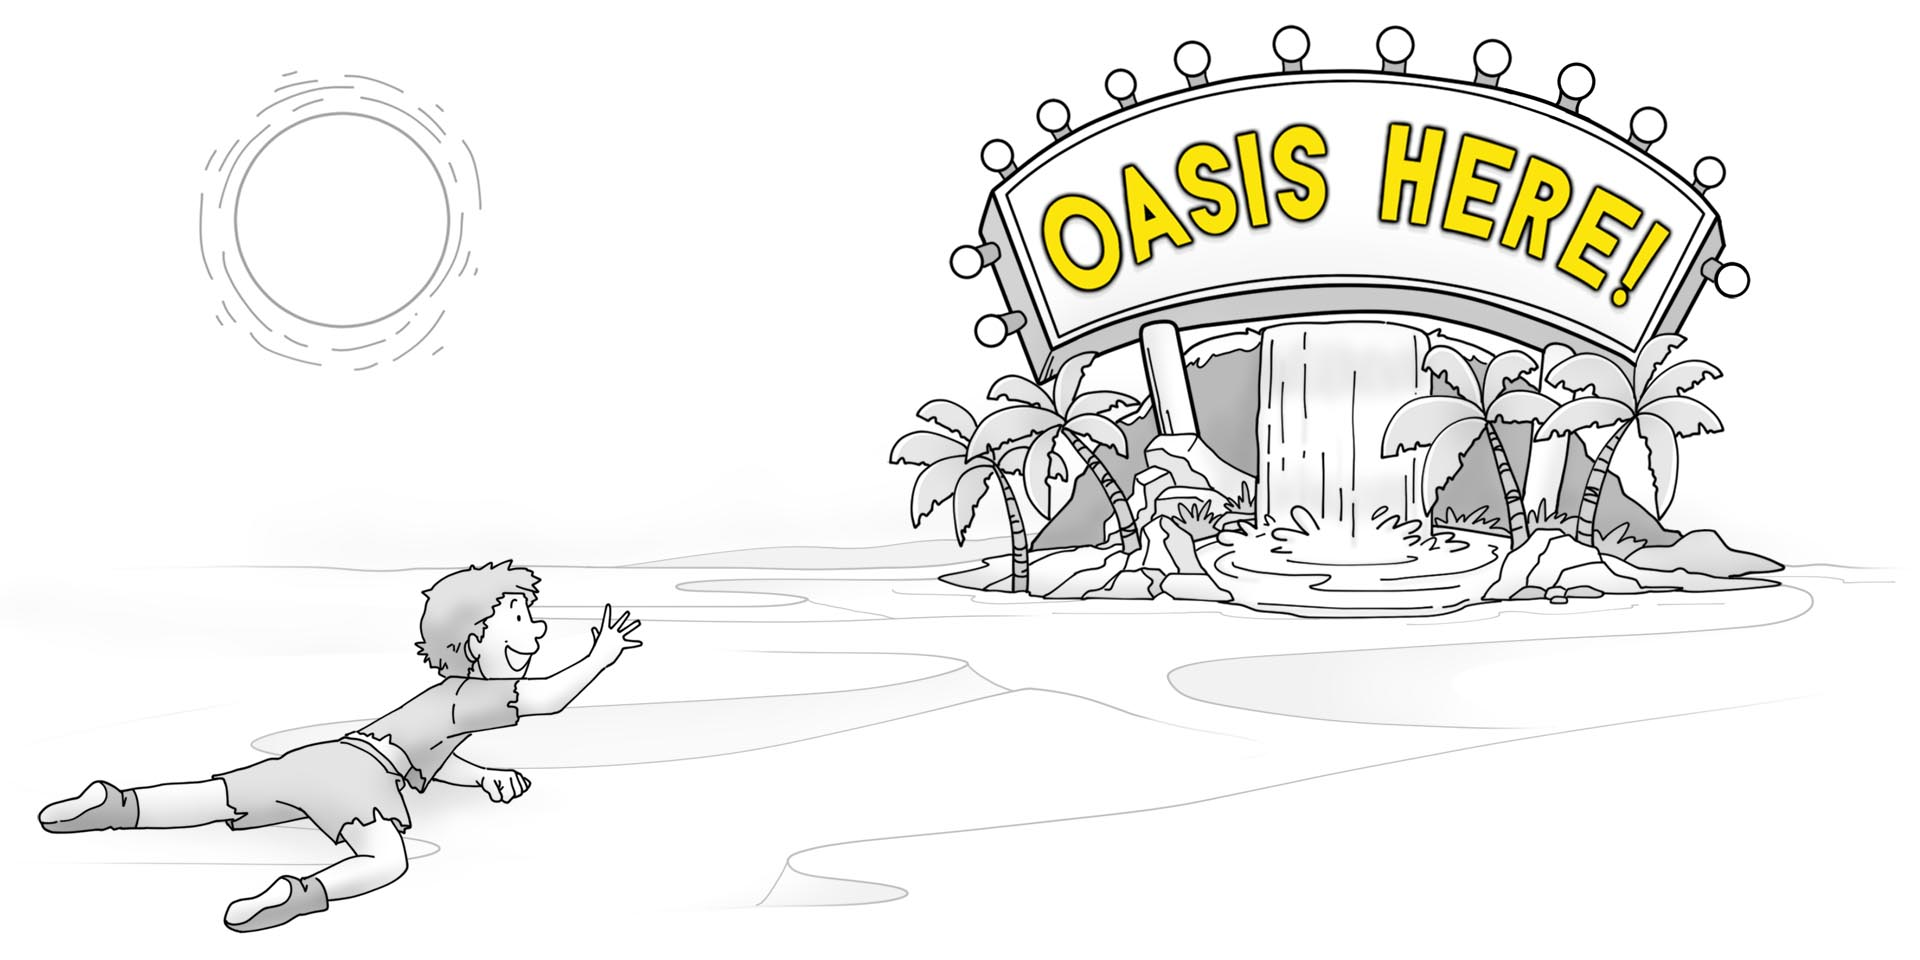 A survivor crawling in the desert sees a big flashing sign for an oasis.